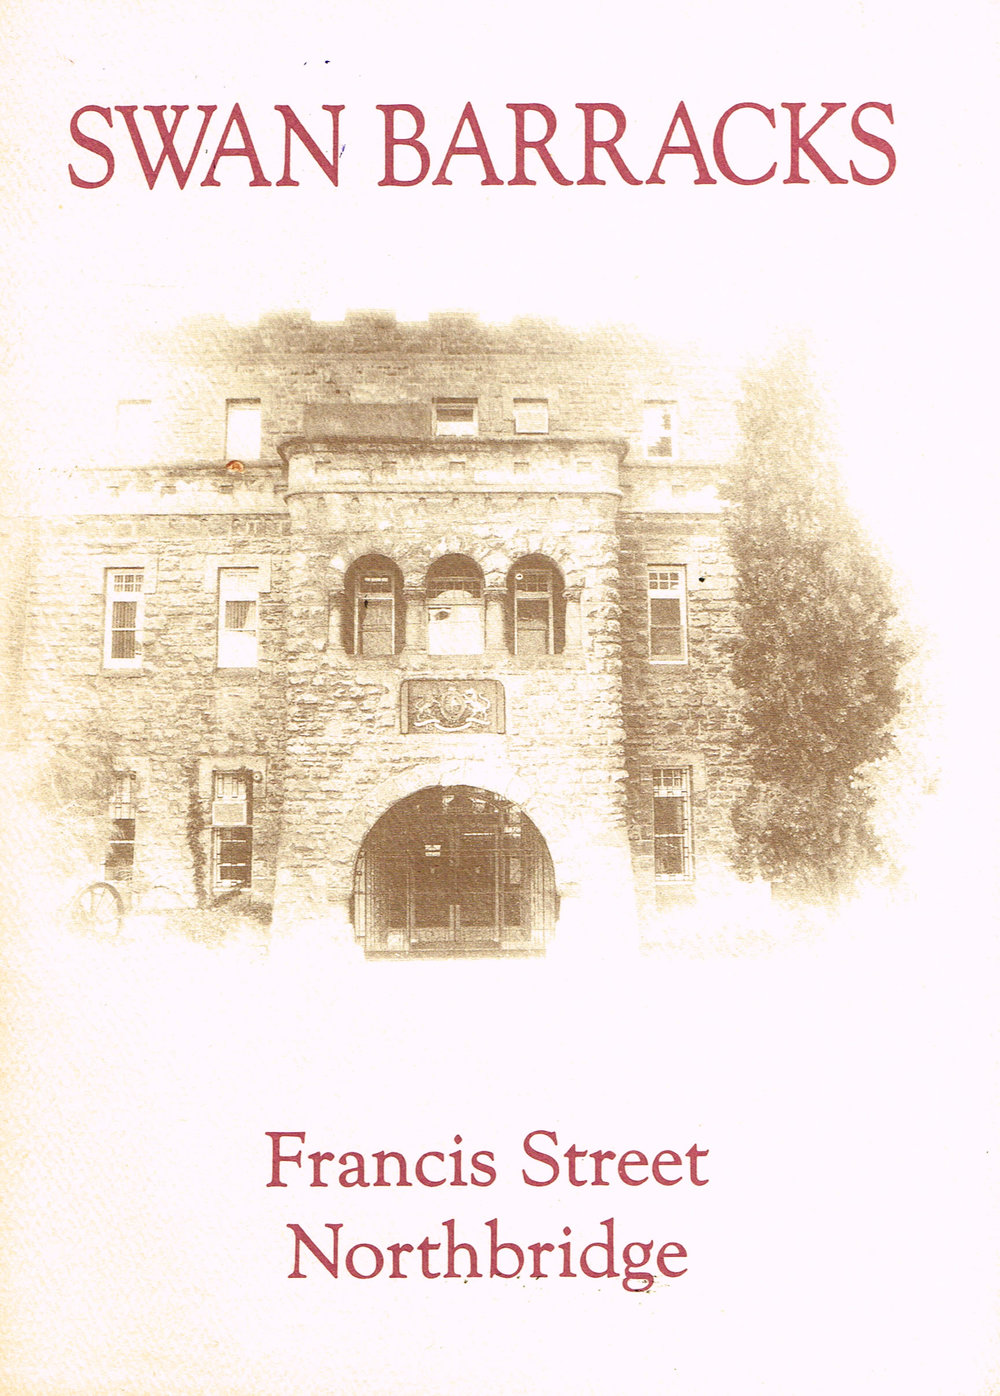 Swan Barracks, Francis Street Northbridge   Compiled by 5MDPR and Australian Army, 5th Military District Public Relations